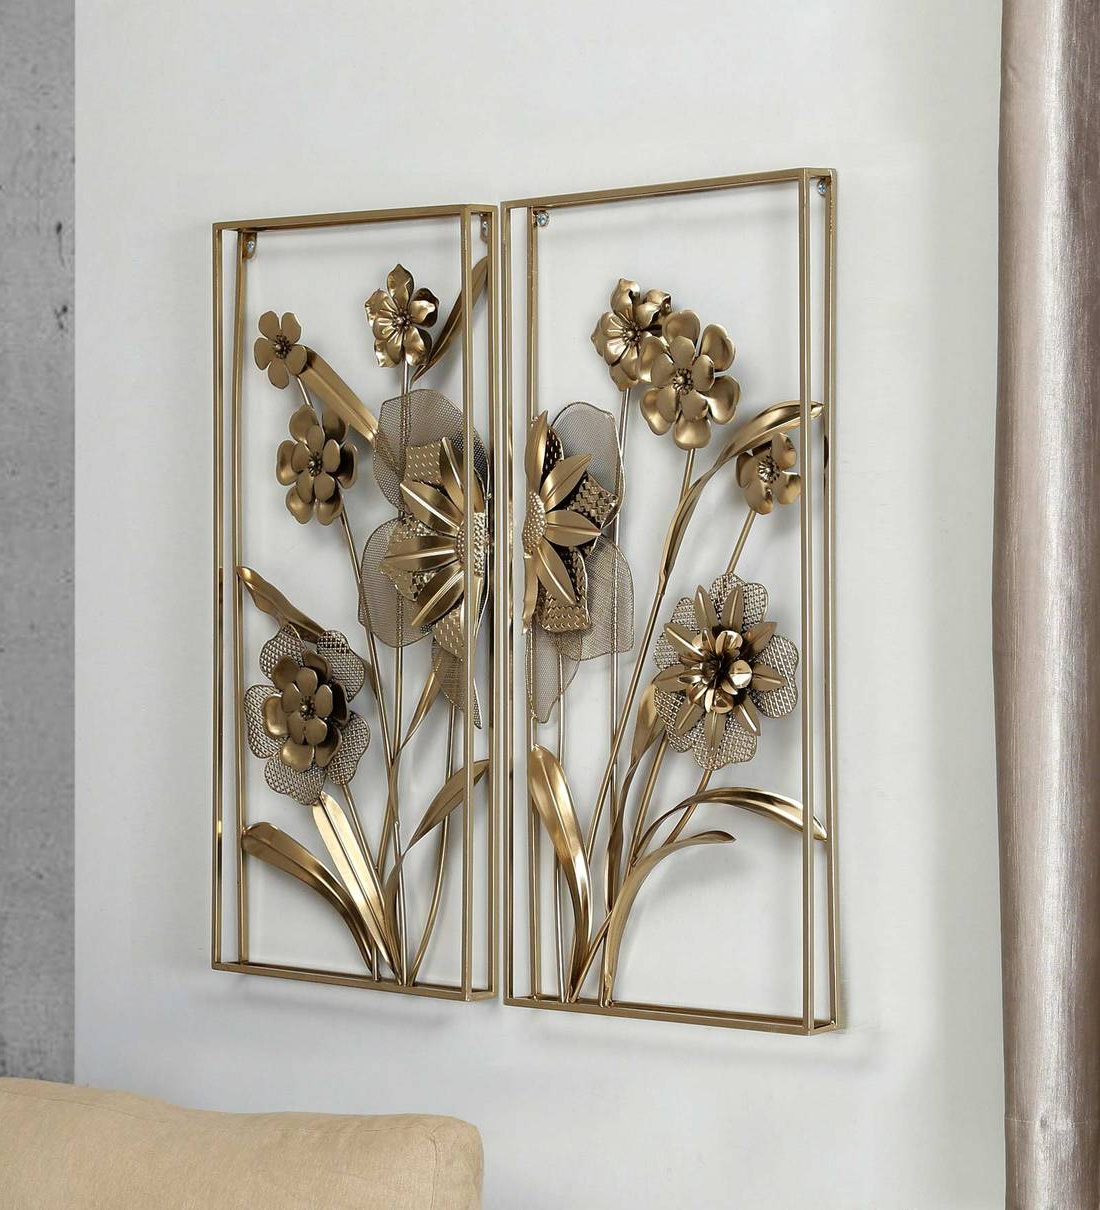 Golden Metal Wall Decor For Fashionable 'porch Rules' Metal Wall Décor (View 16 of 20)